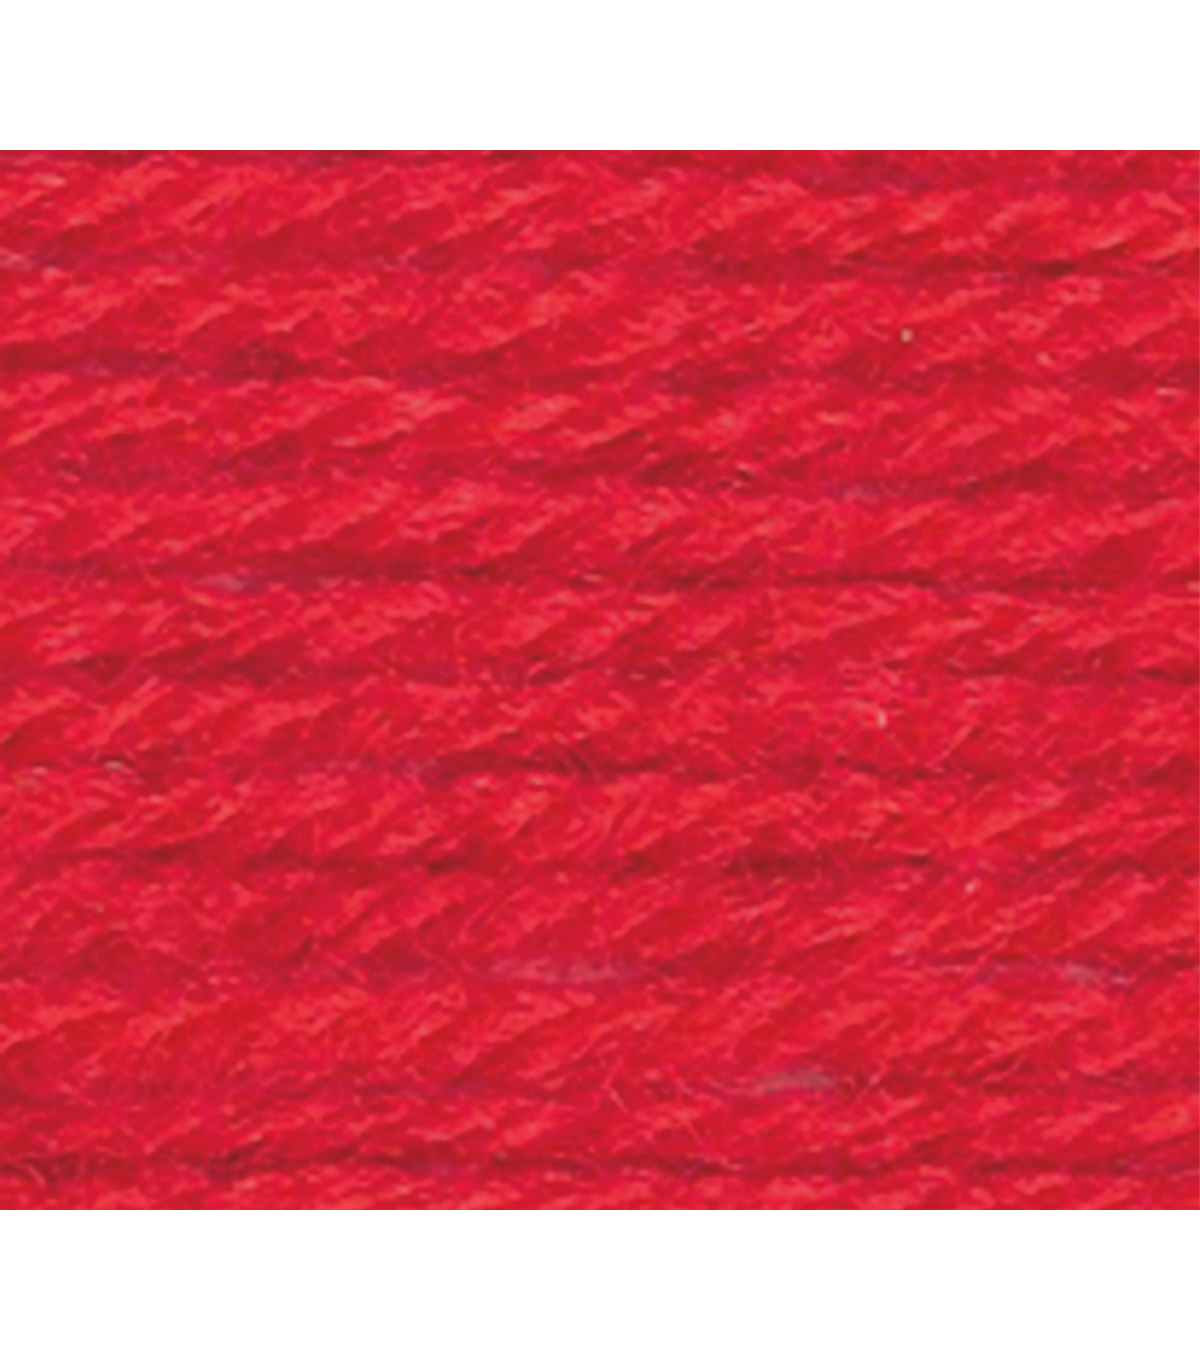 Lion Brand Wool-Ease Yarn, Ranch Red